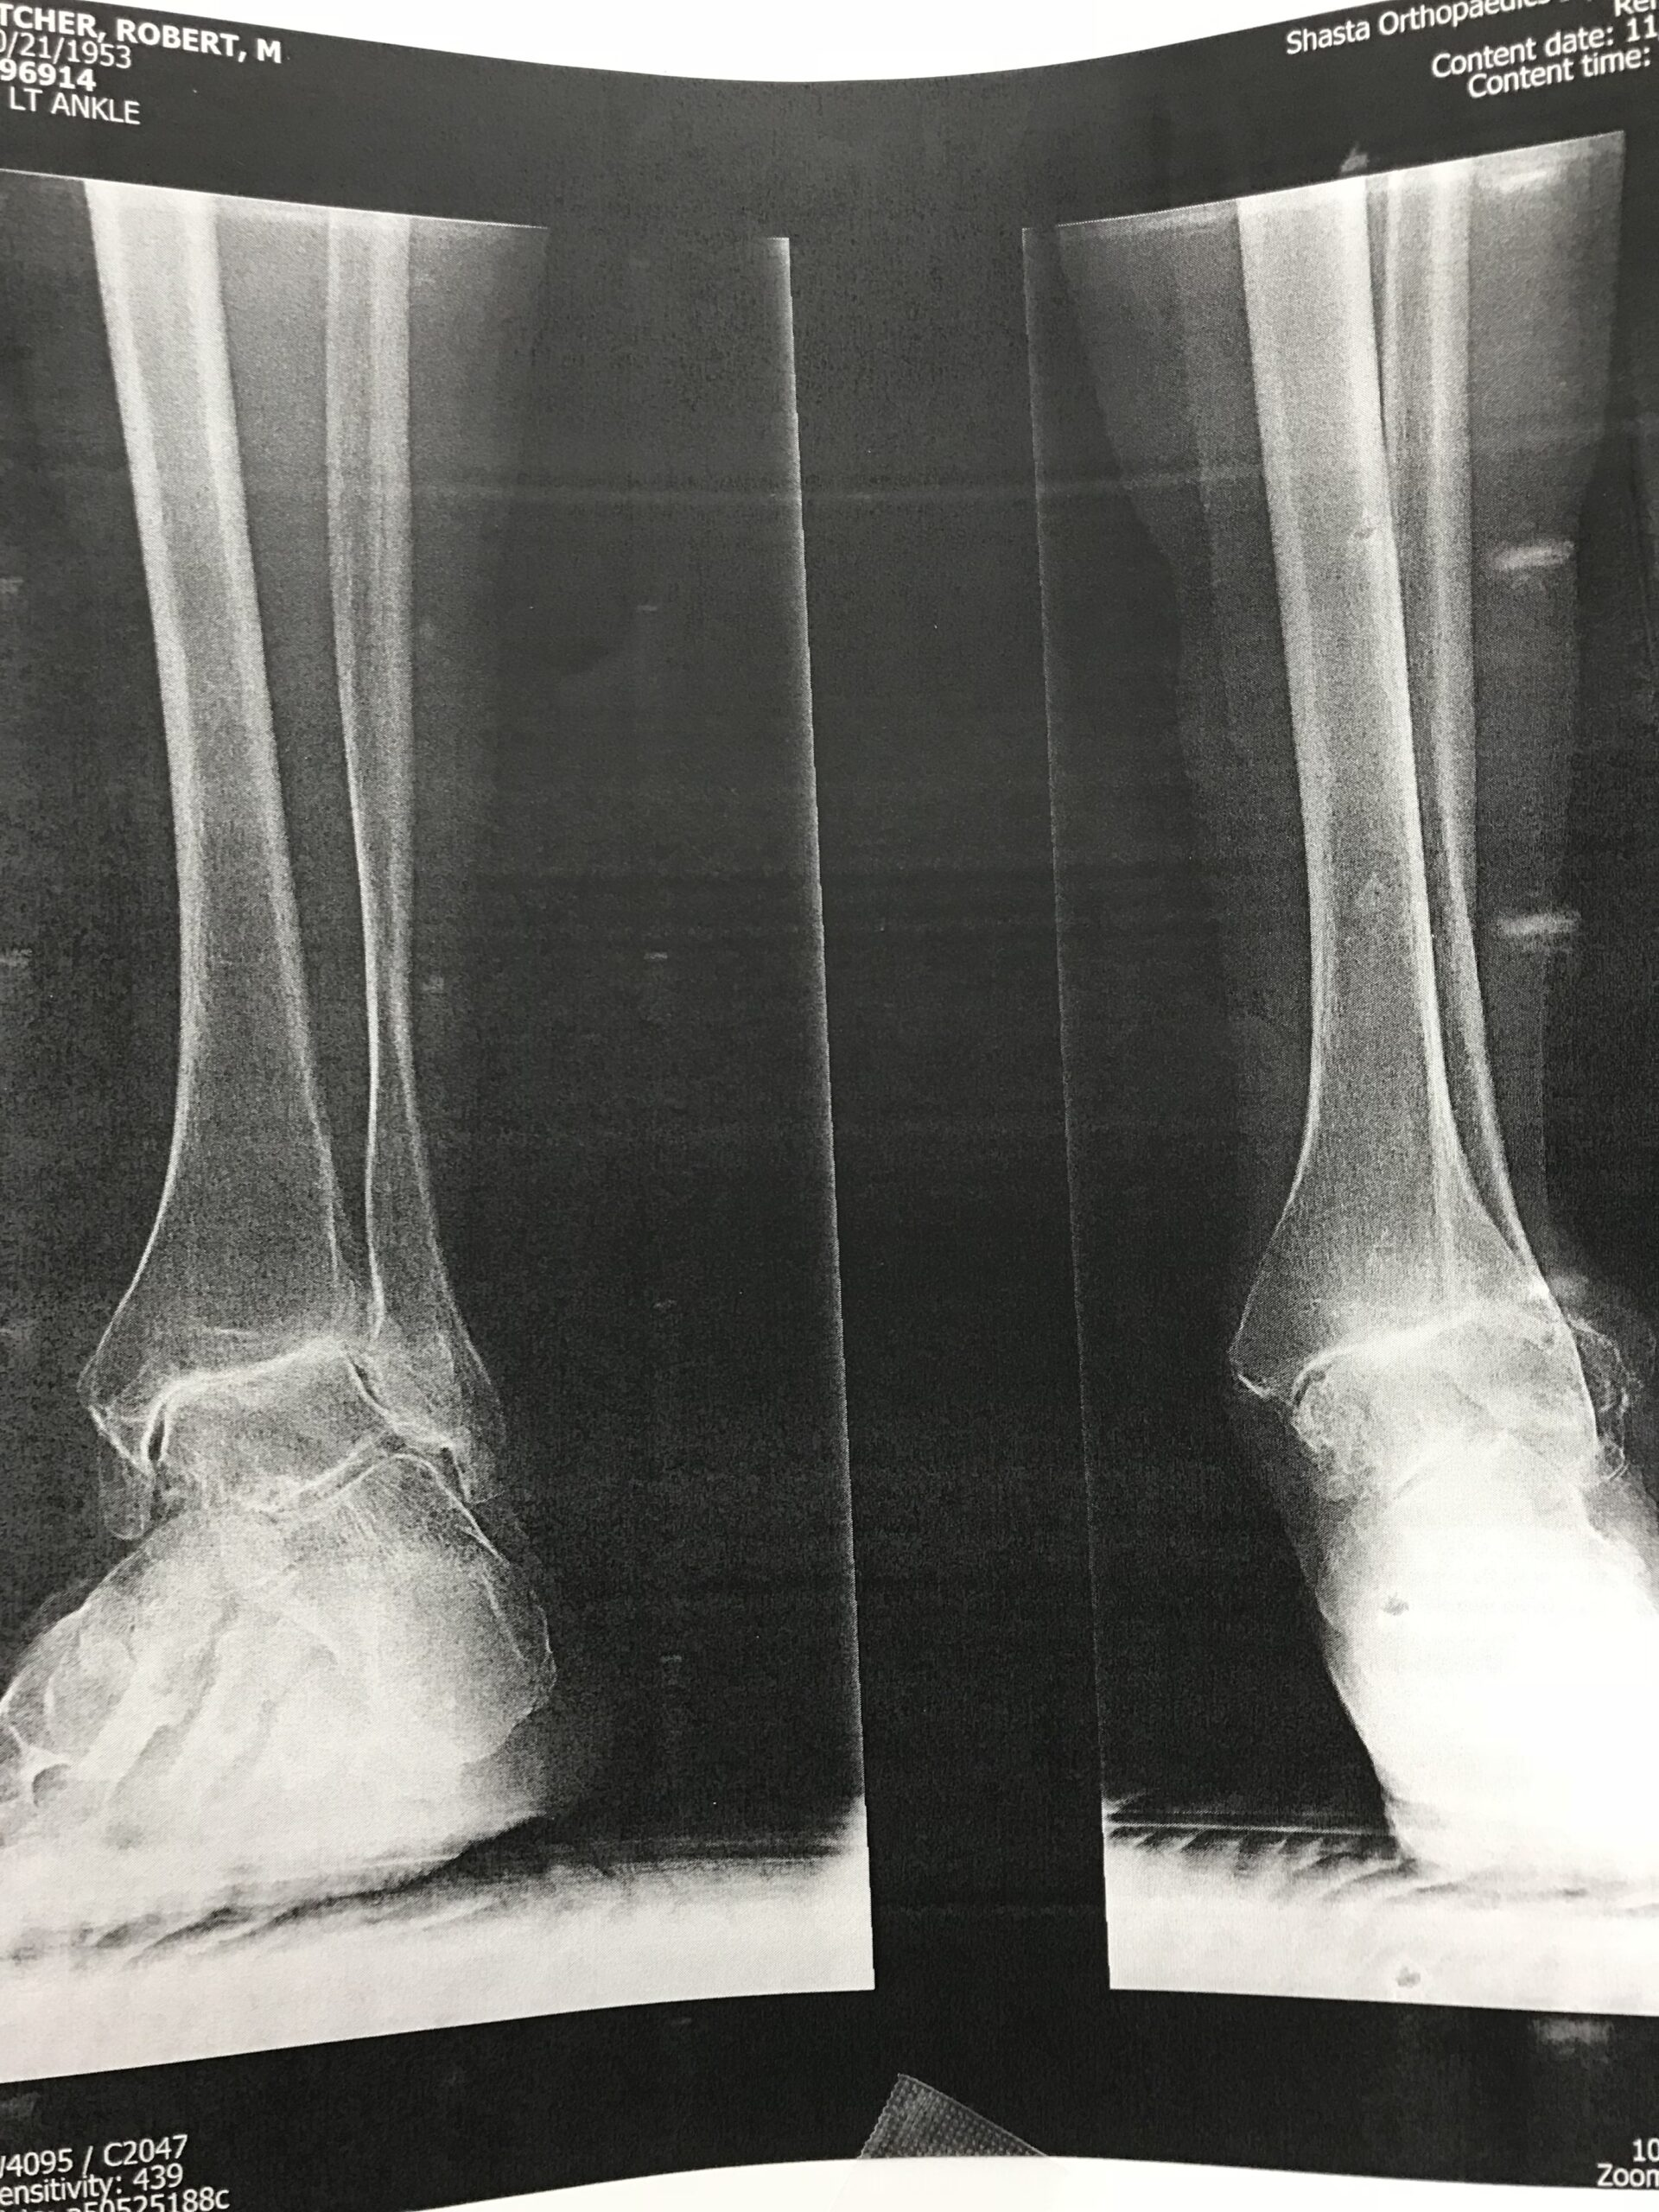 Total Ankle Replacement Arthroplasty x ray image b shasta orthopaedics 051721